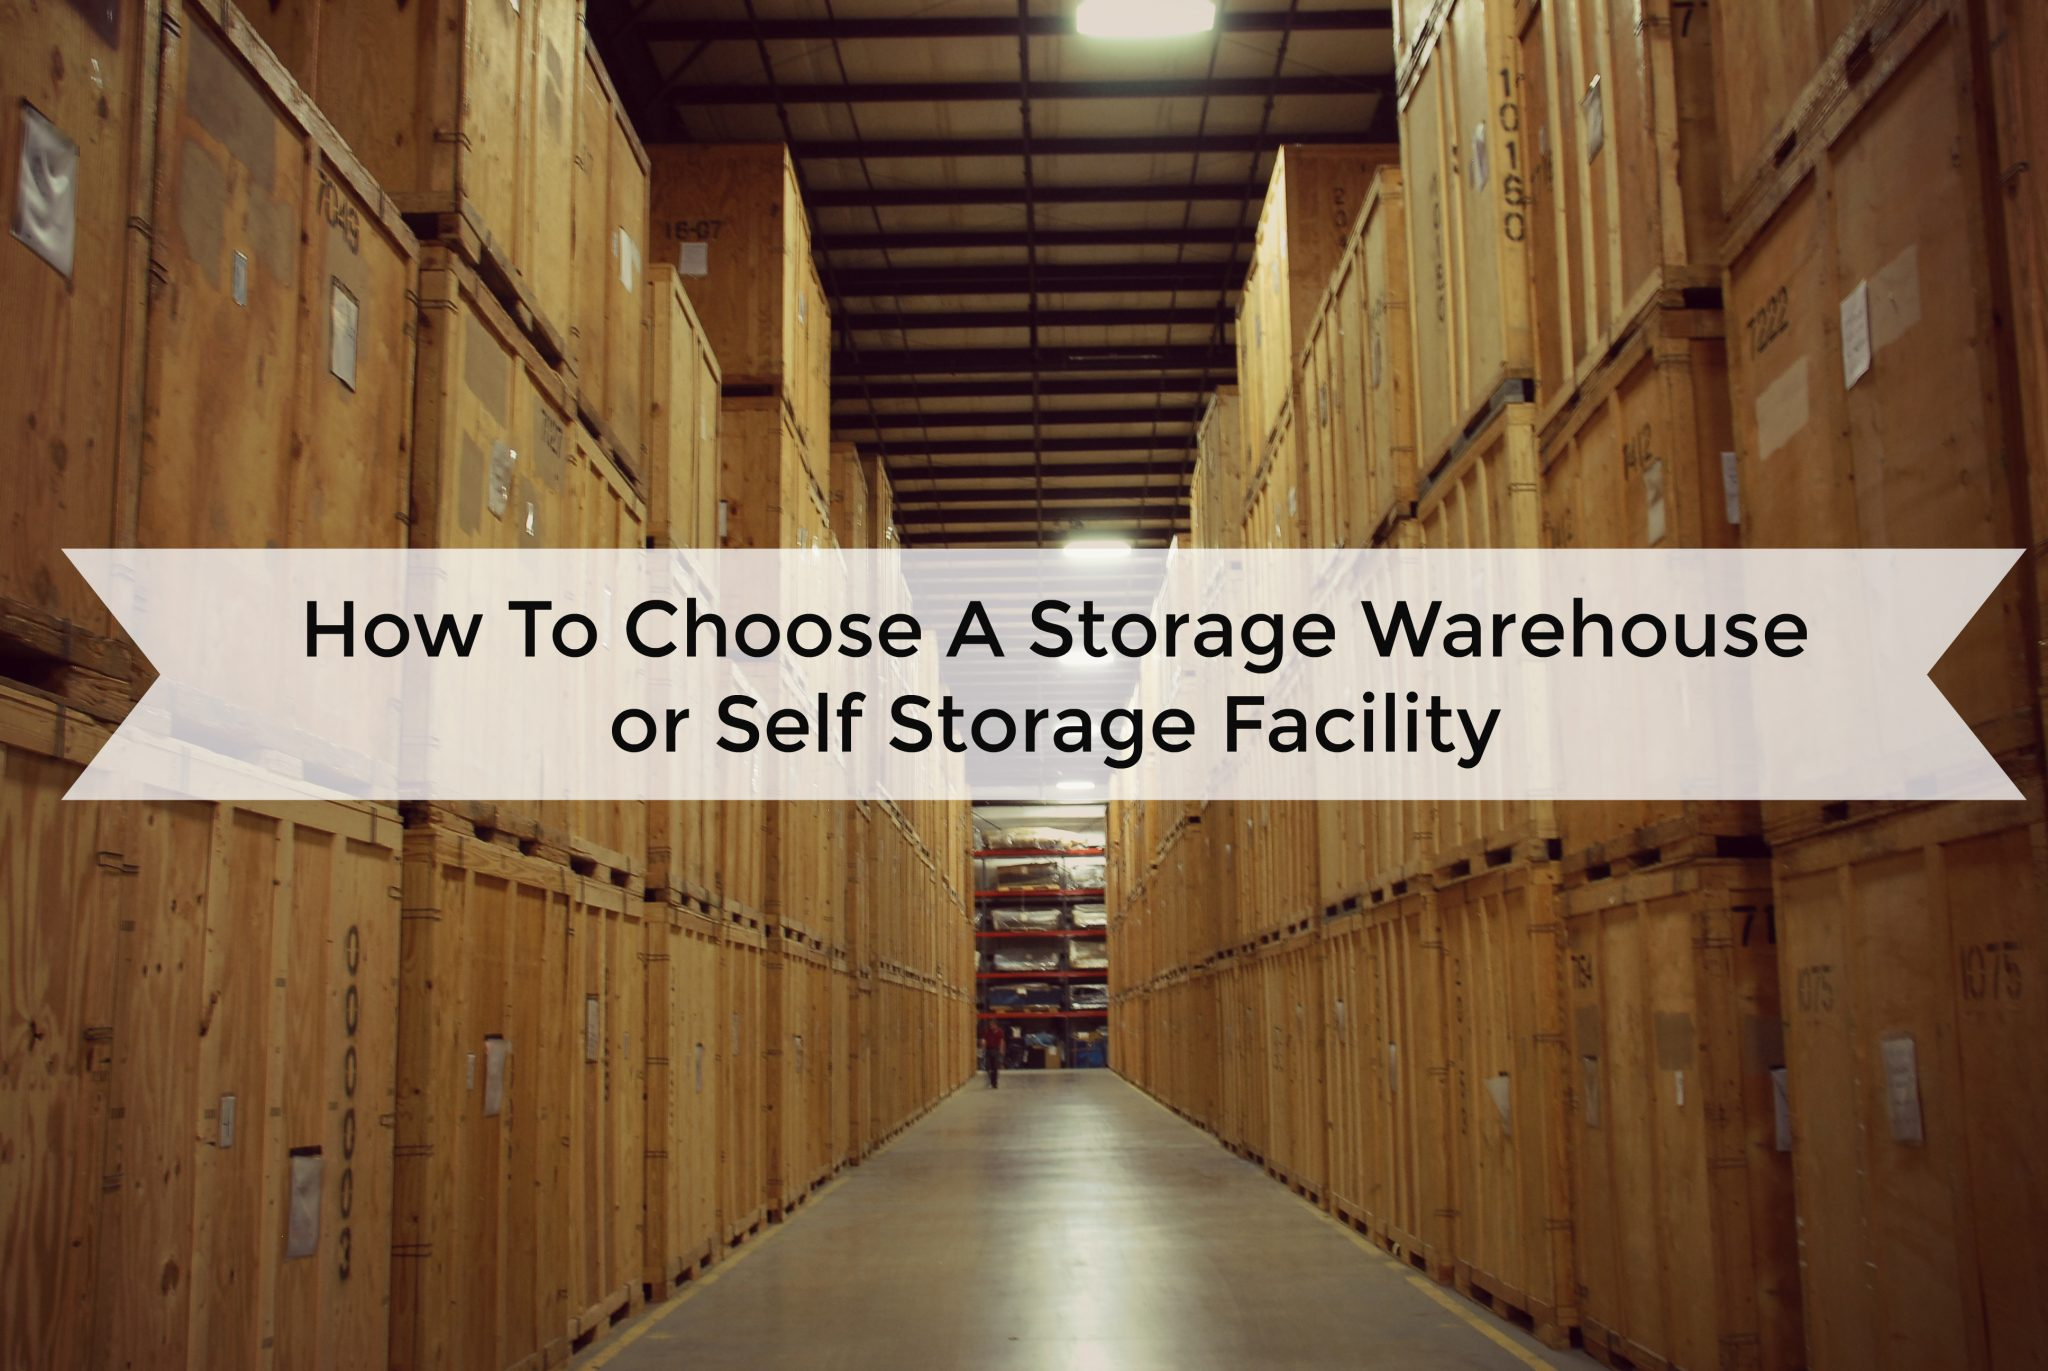 How To Choose A Storage Warehouse or Self Storage Facility